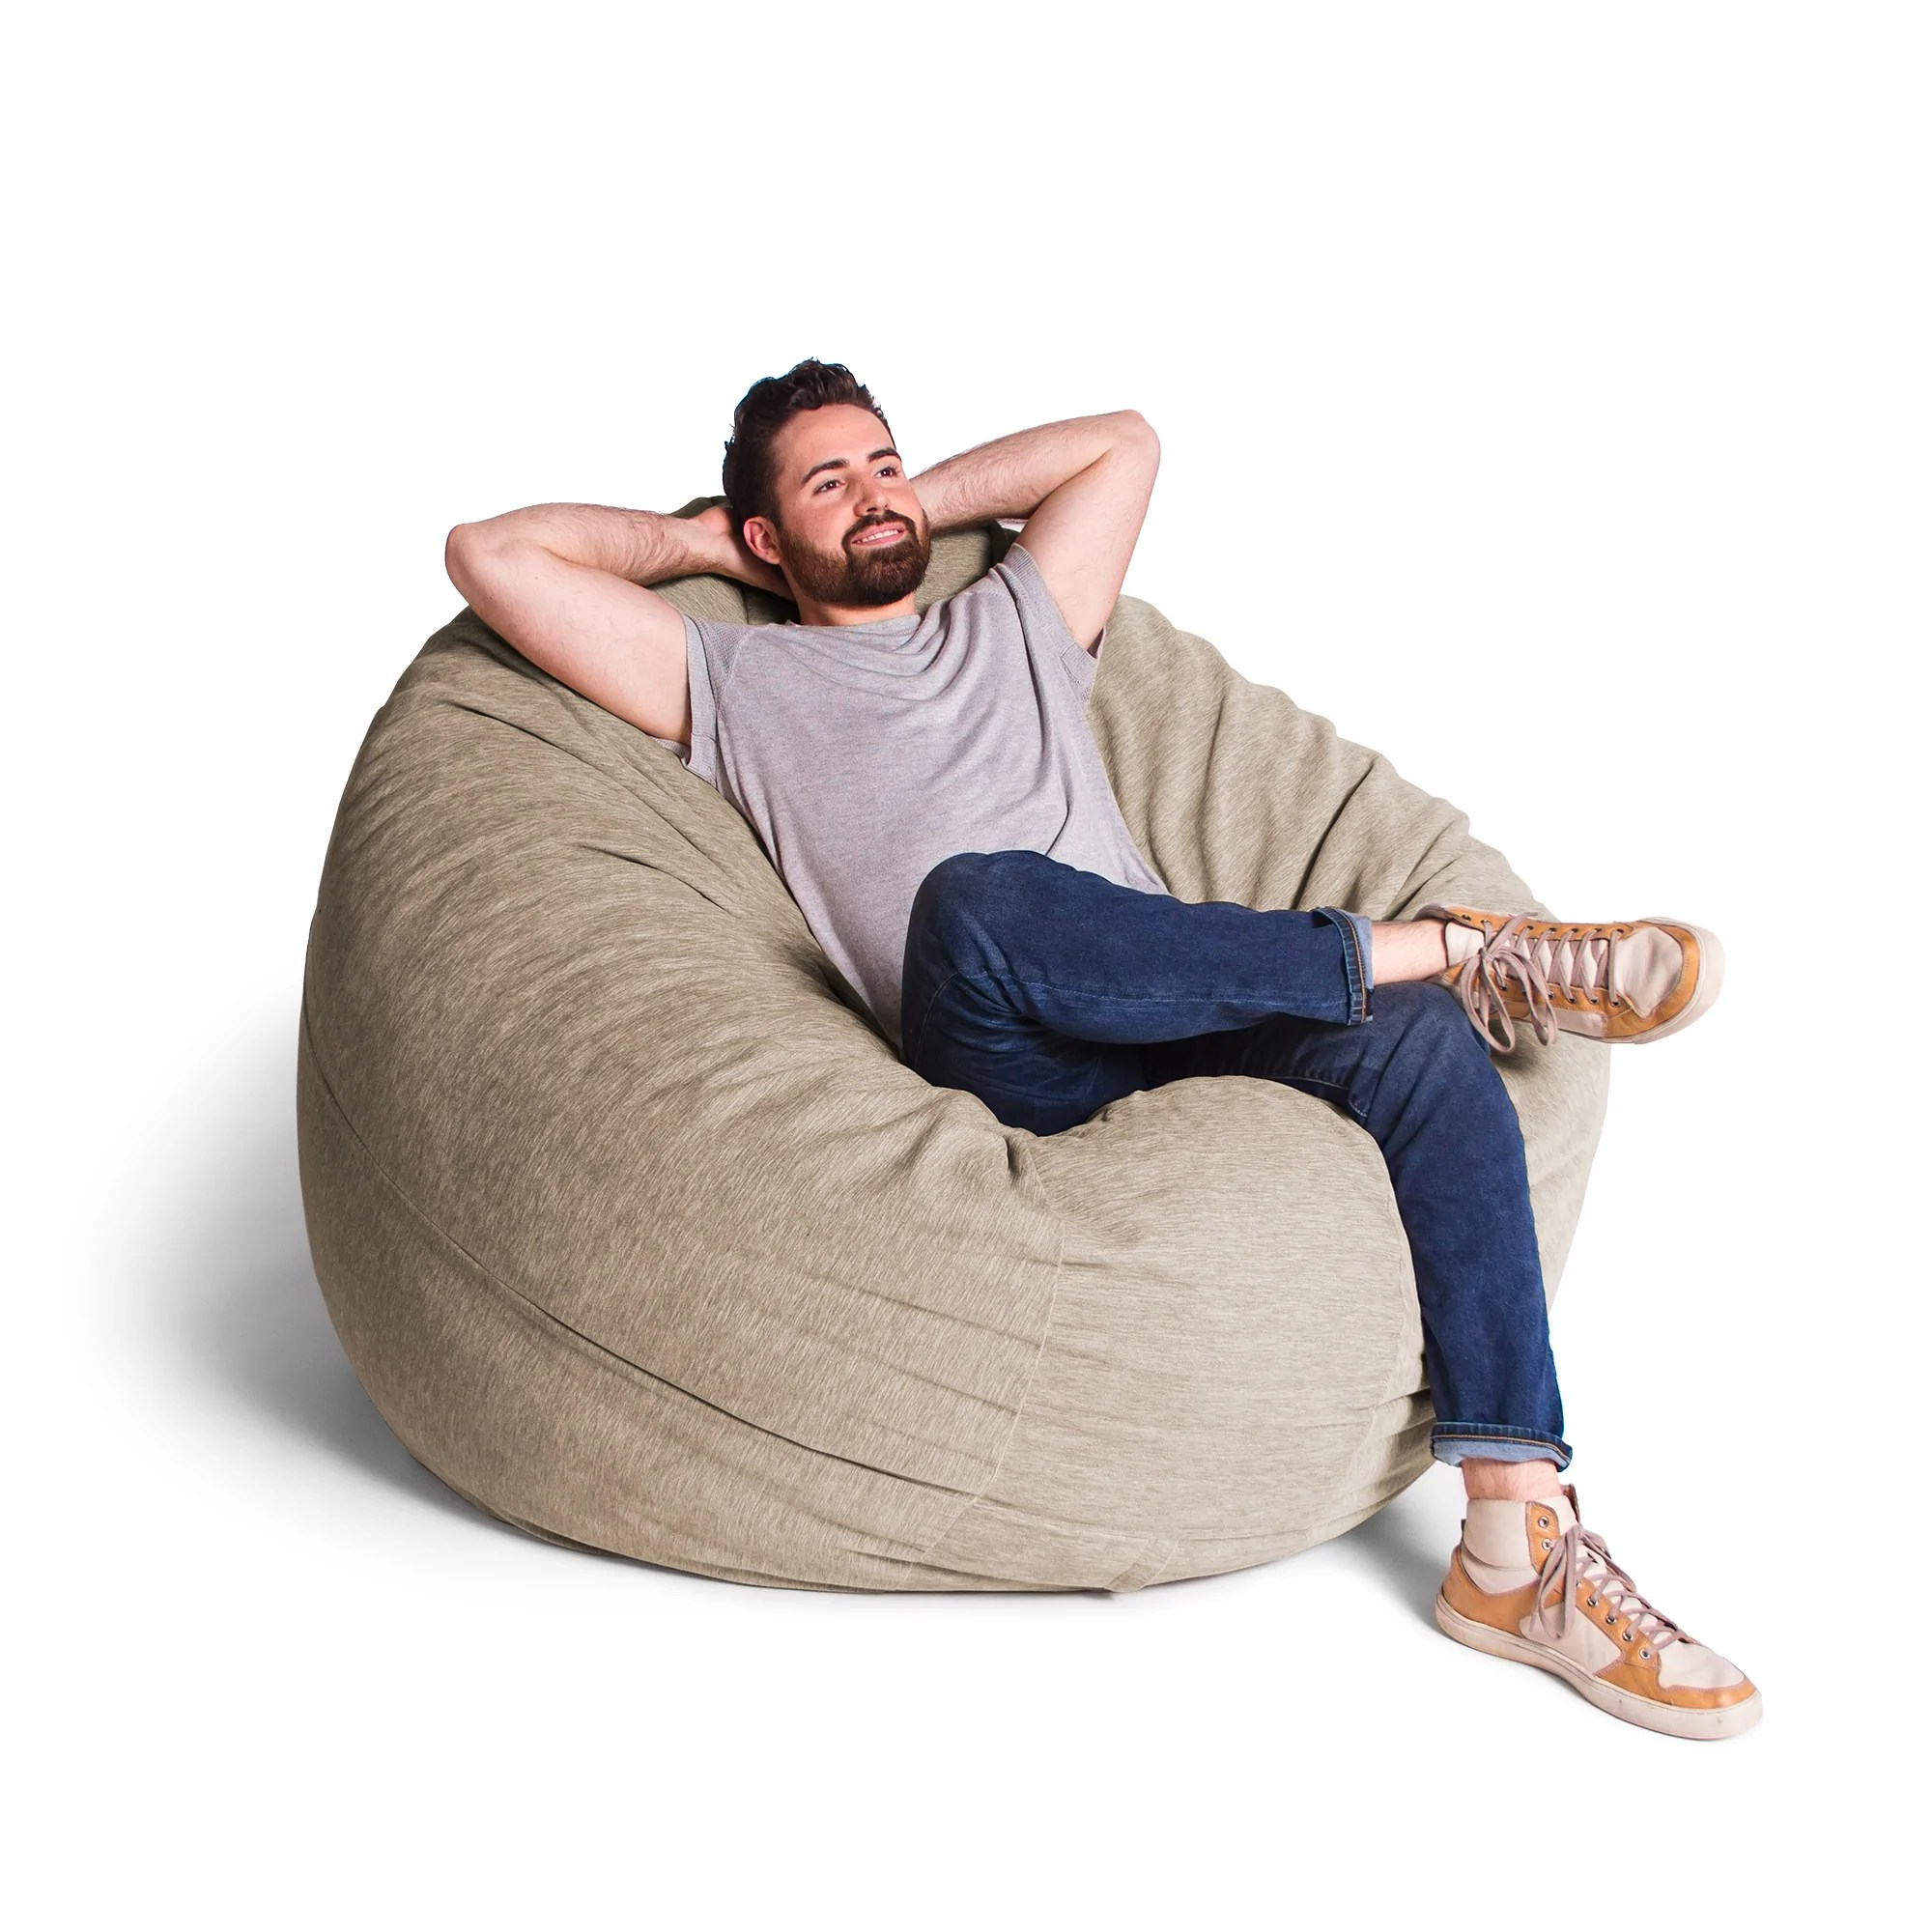 bean bag chairs ski lift chair for sale chenille 6 foot jaxx cocoon 3 in 1 comfy beige